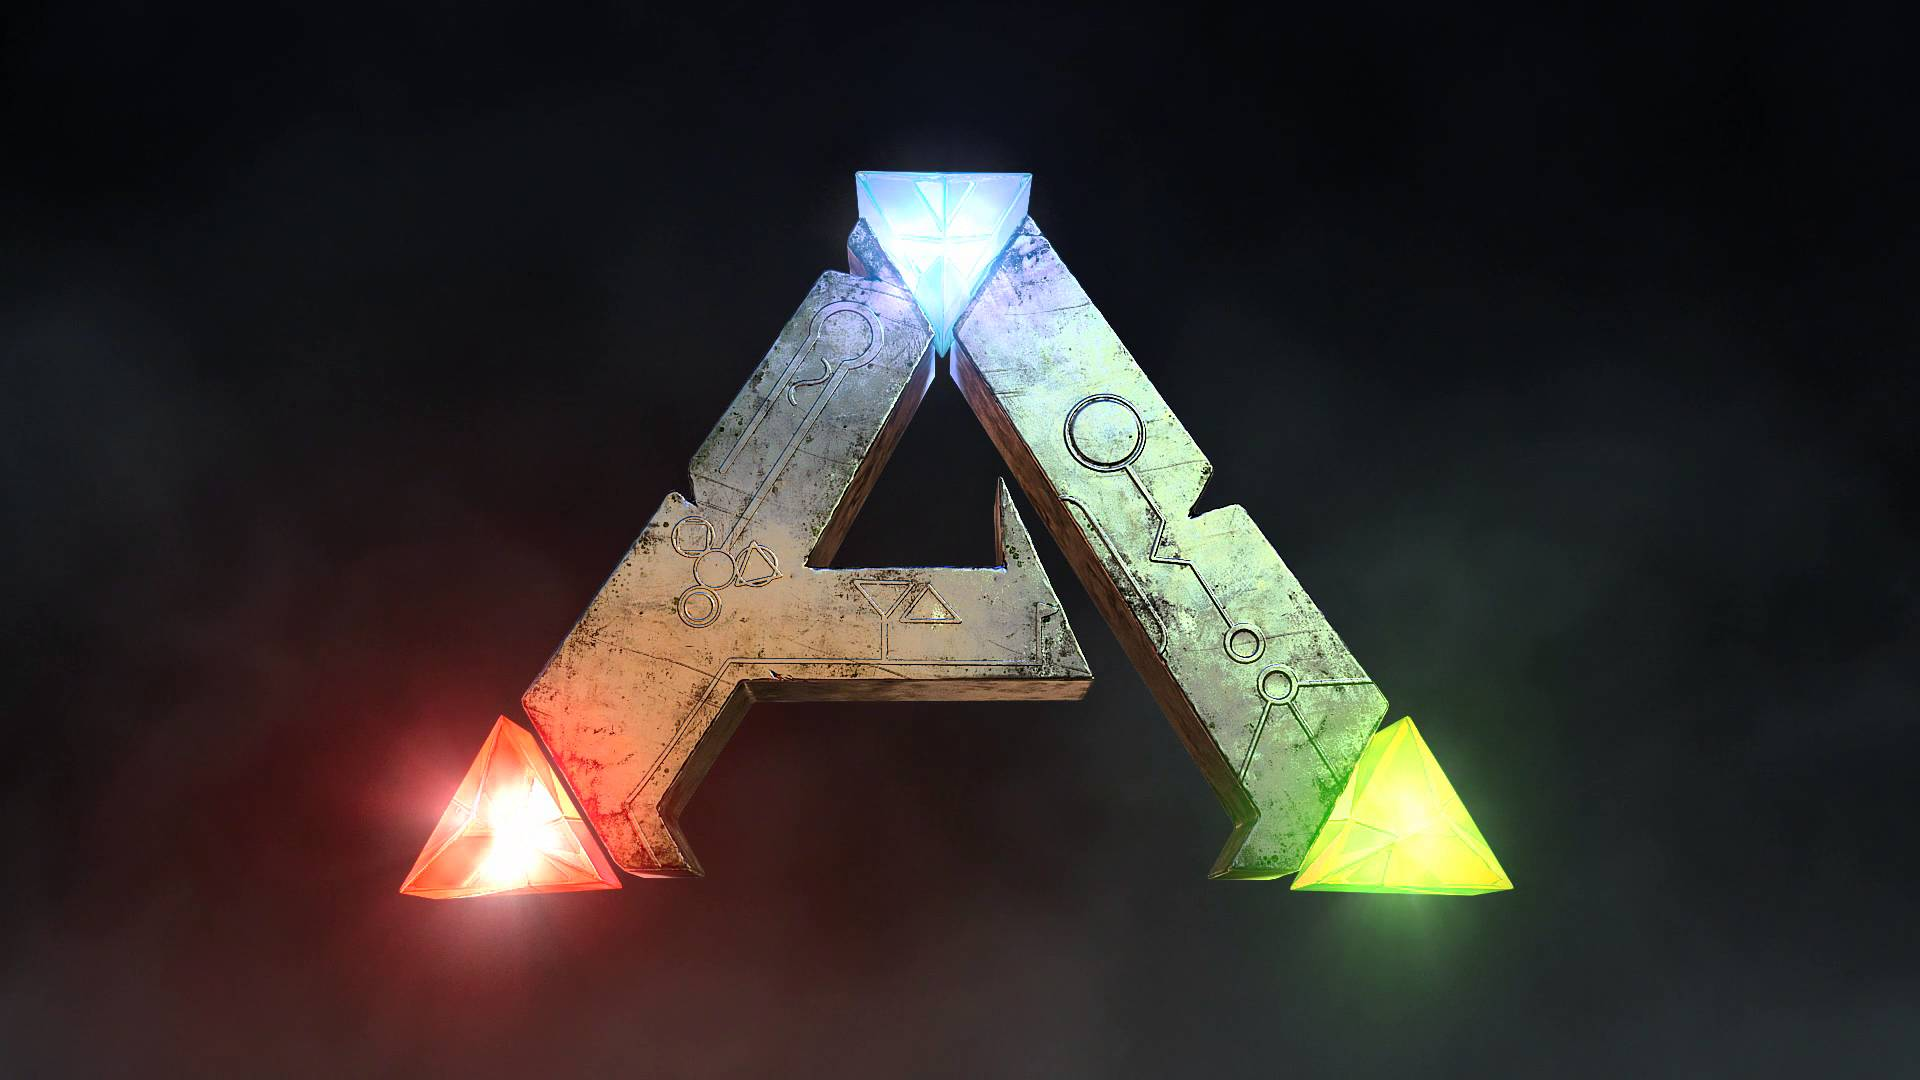 Ark Survival Evolved Logos The original adventures raiders of the lost ark logo. ark survival evolved logos